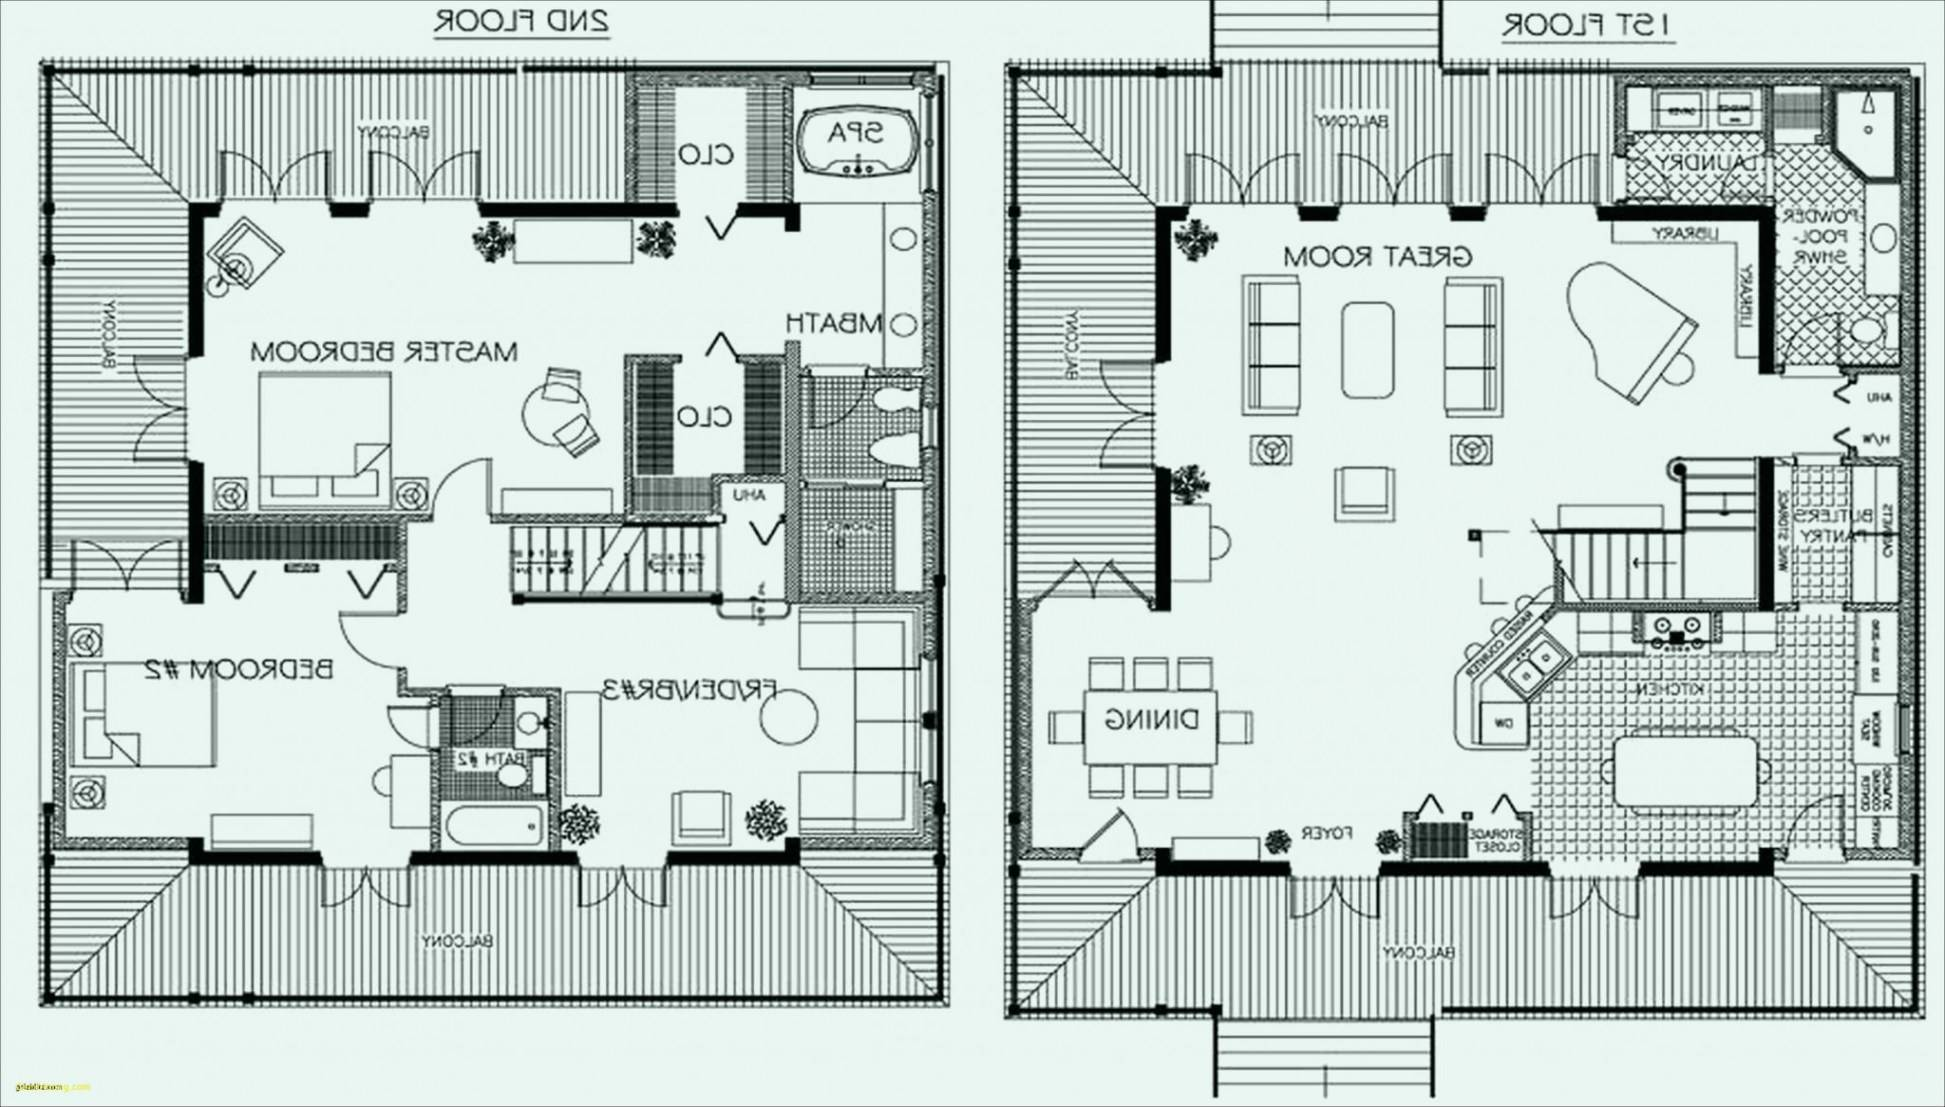 house plans 3d images 0d american home shield plans floor plan 3d fisalgeria of house plans 3d images